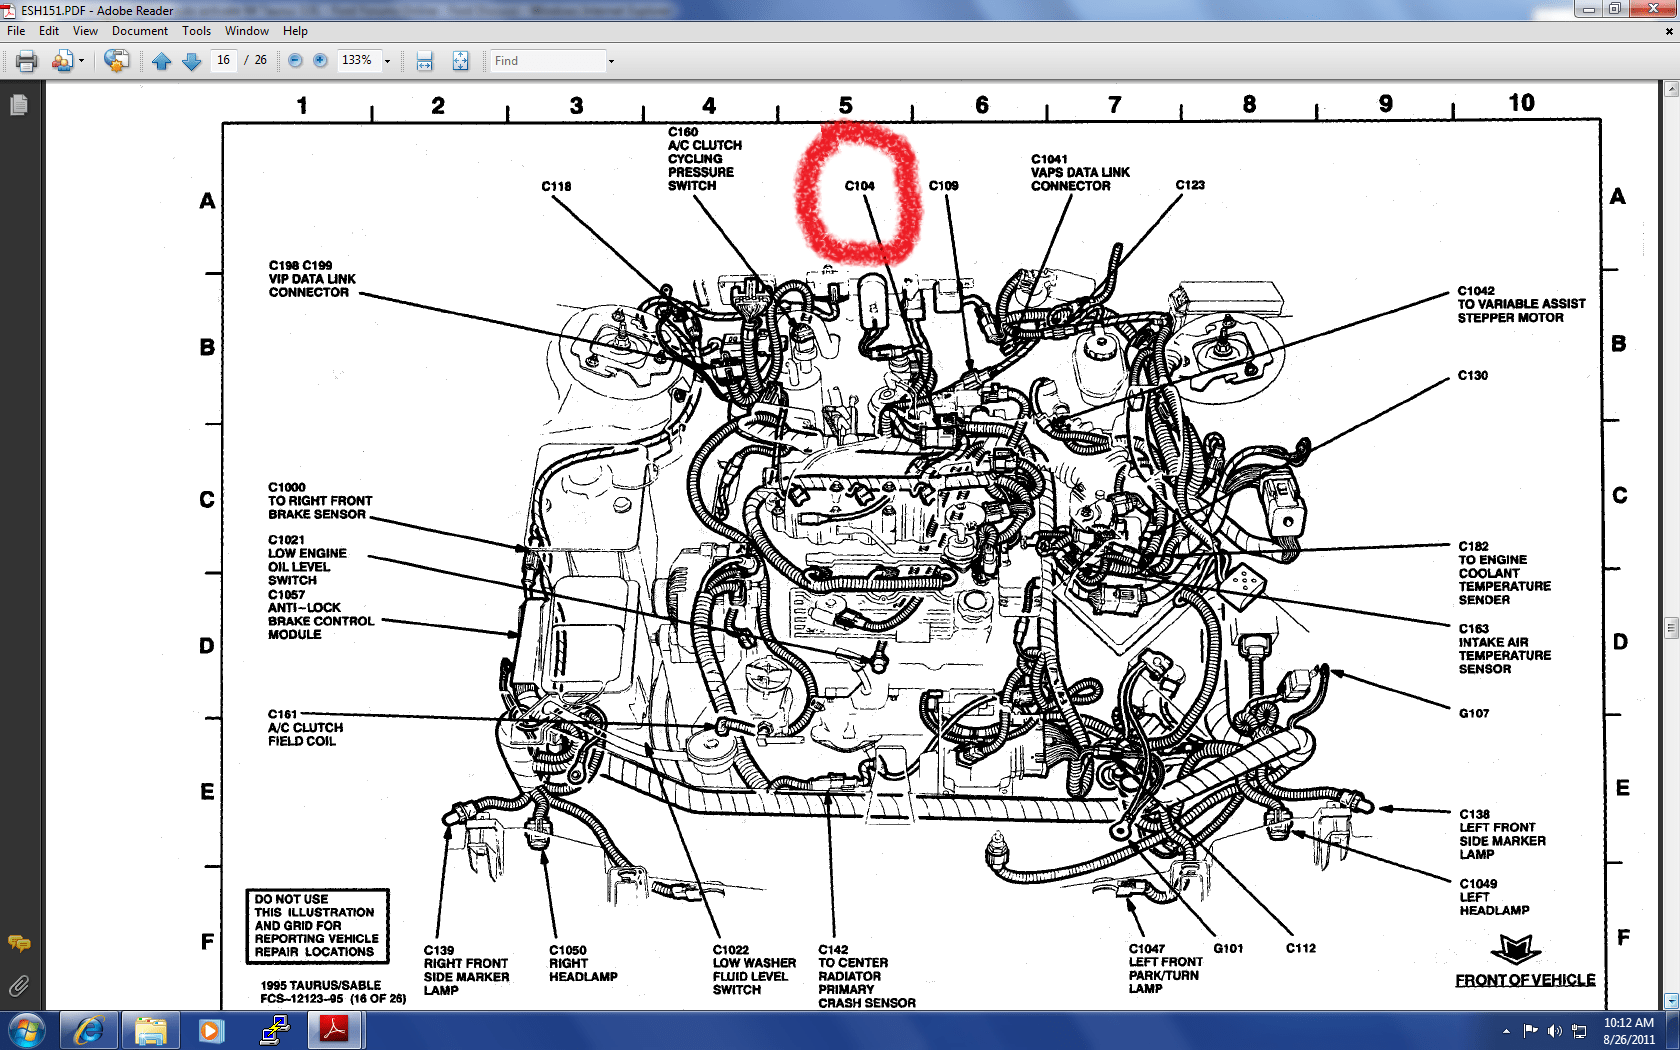 hight resolution of 1999 taurus engine diagram wiring schematic lifting 2005 taurus engine diagram taurus engine diagram source 1989 ford taurus sho